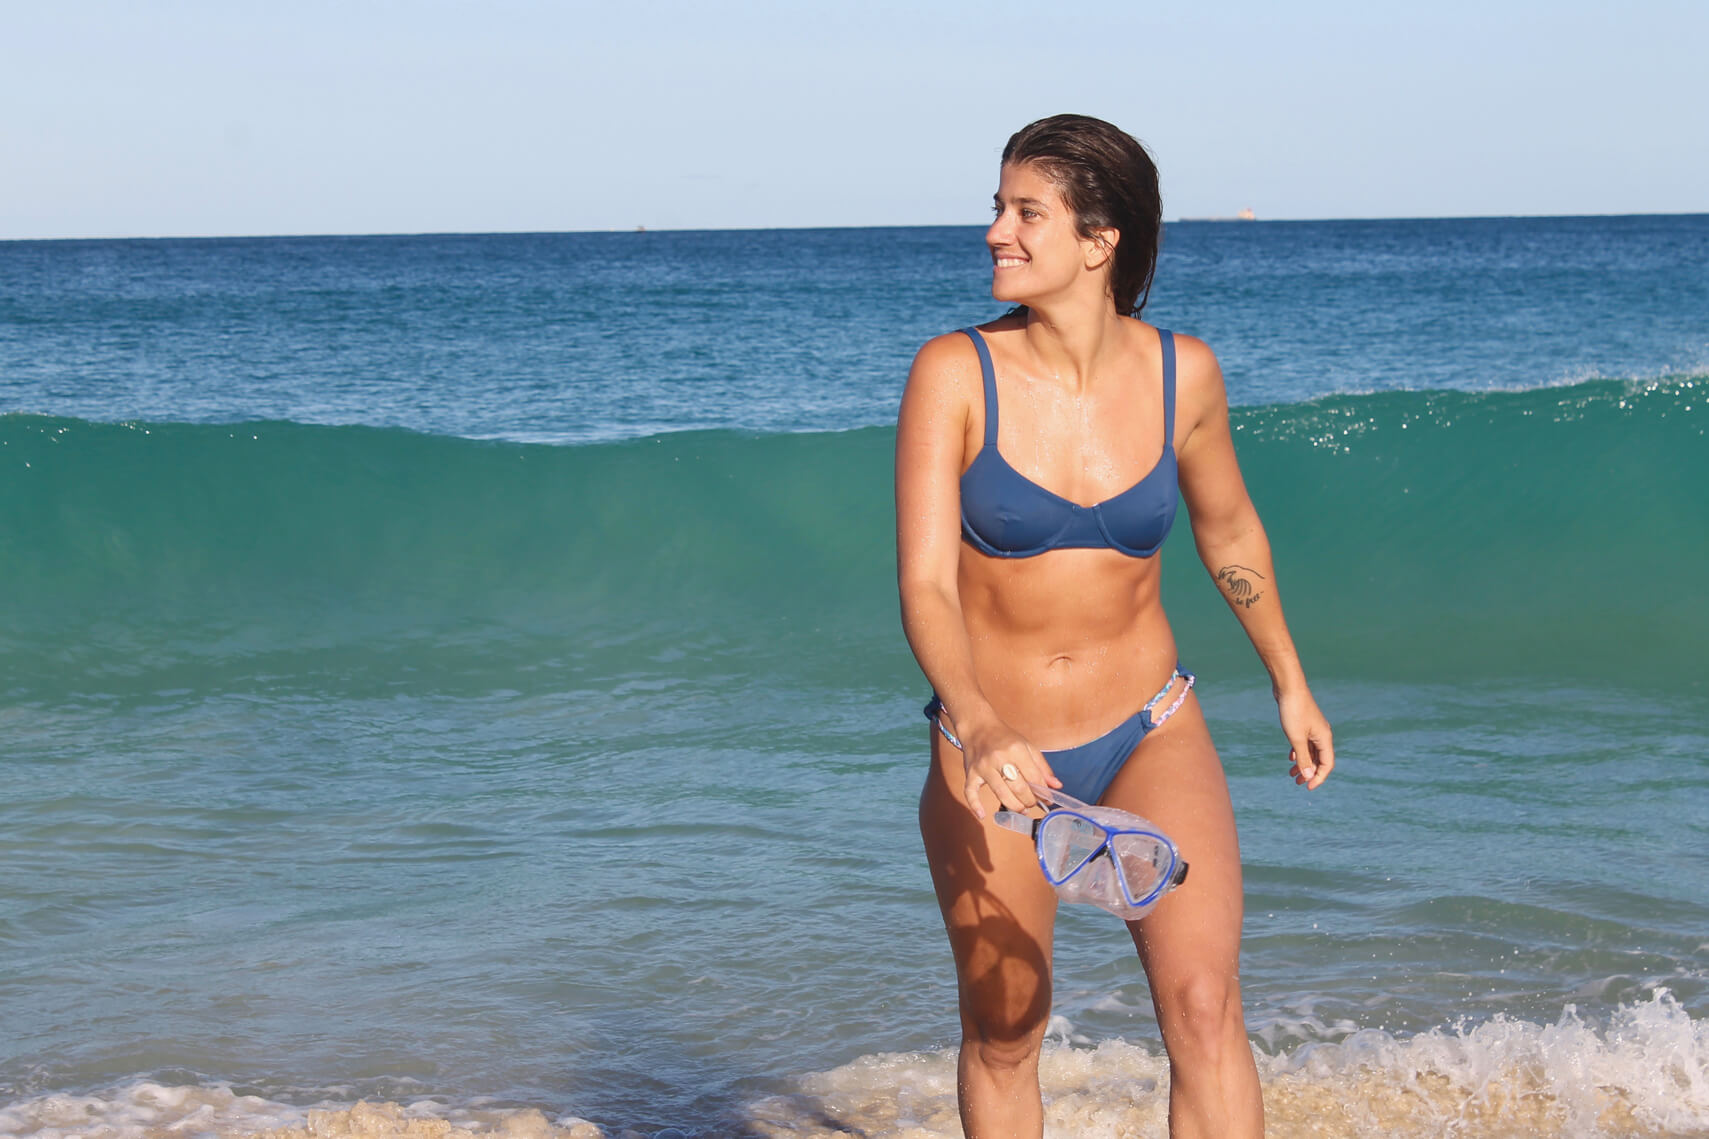 woman in blue bikini at beach holding goggles